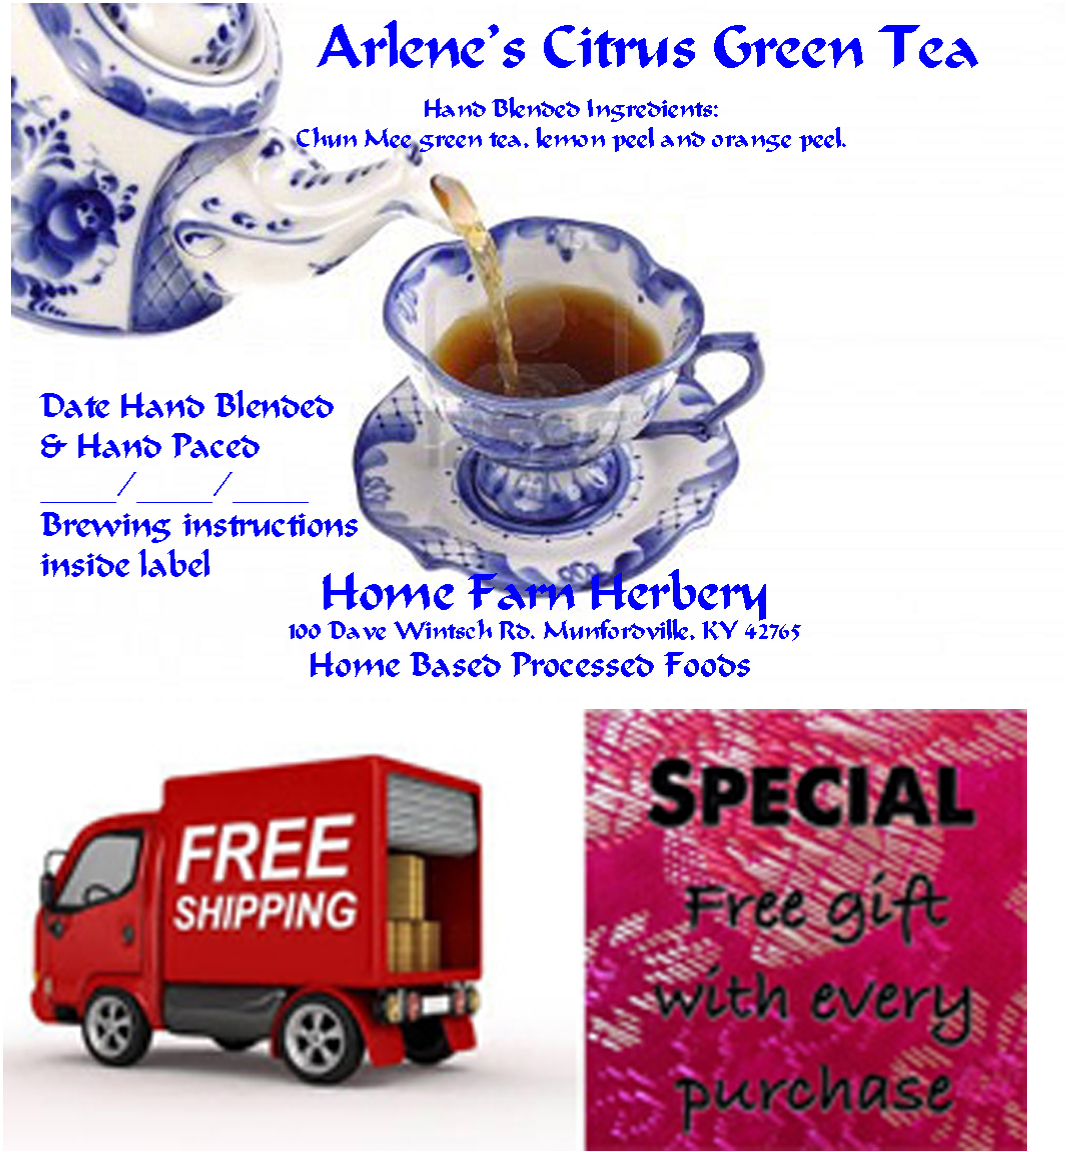 Order Arlene's Citrus Green Tea now and receives a free gift plus free shipping.